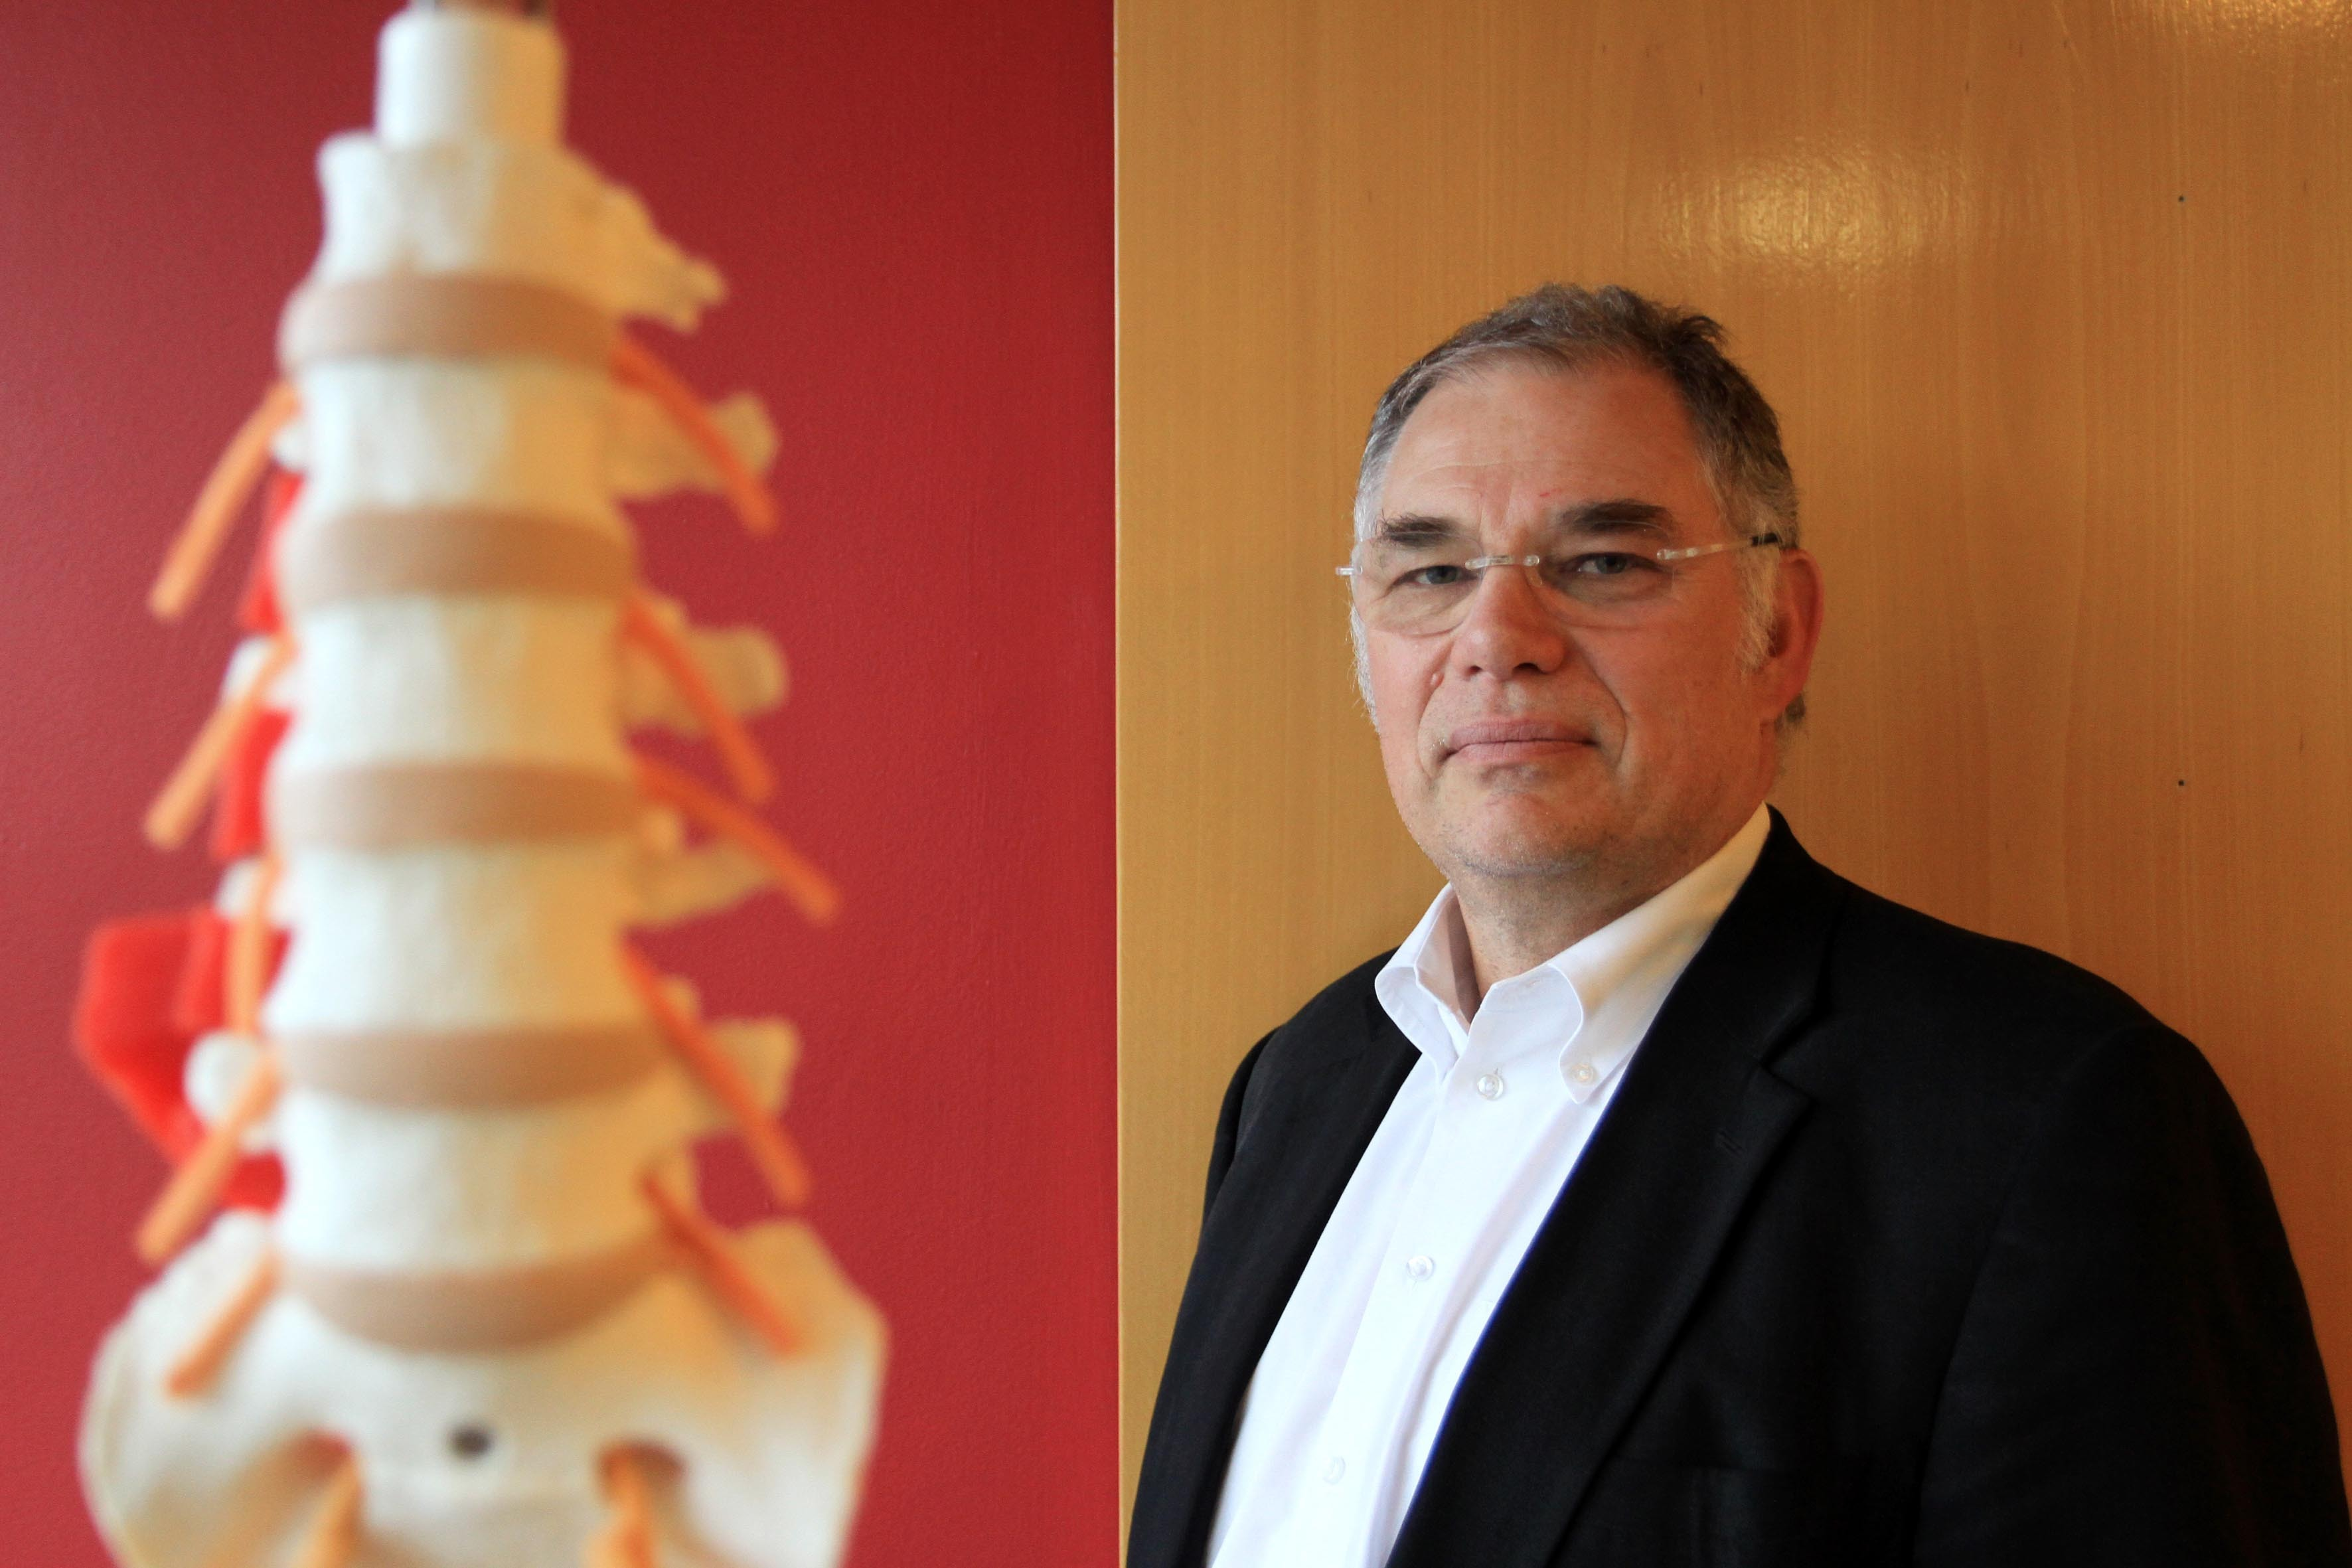 Peter Crosby, CEO, Mainstay Medical (Photo: Business Wire)